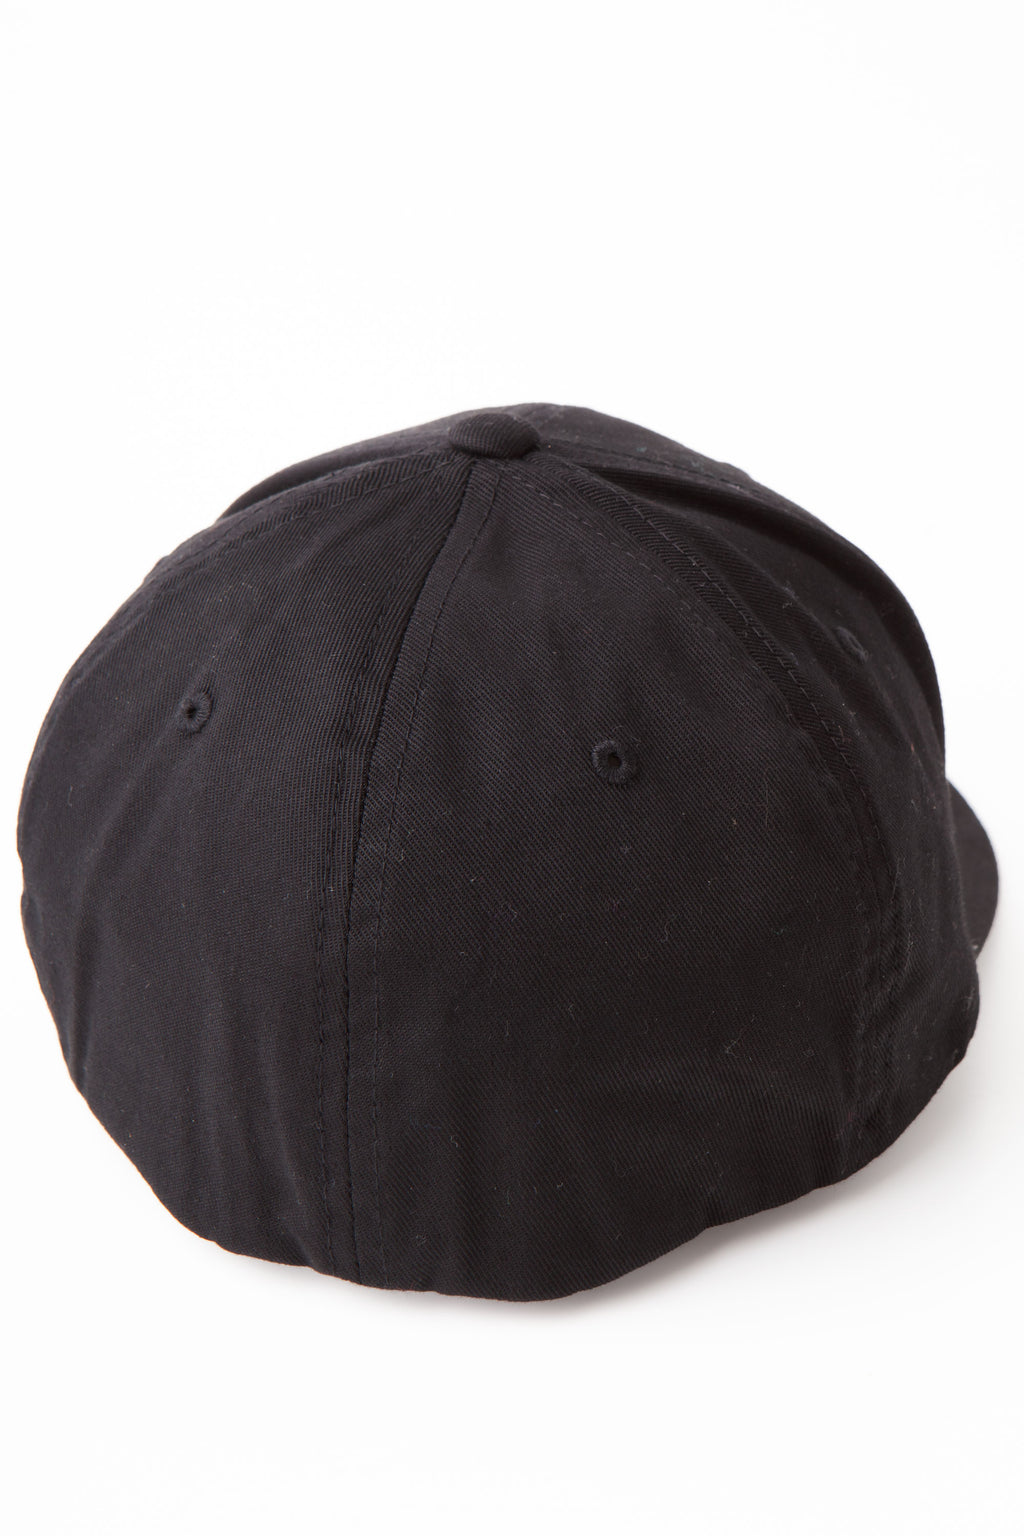 Back of baseball cap showing rounded edge with no detail.